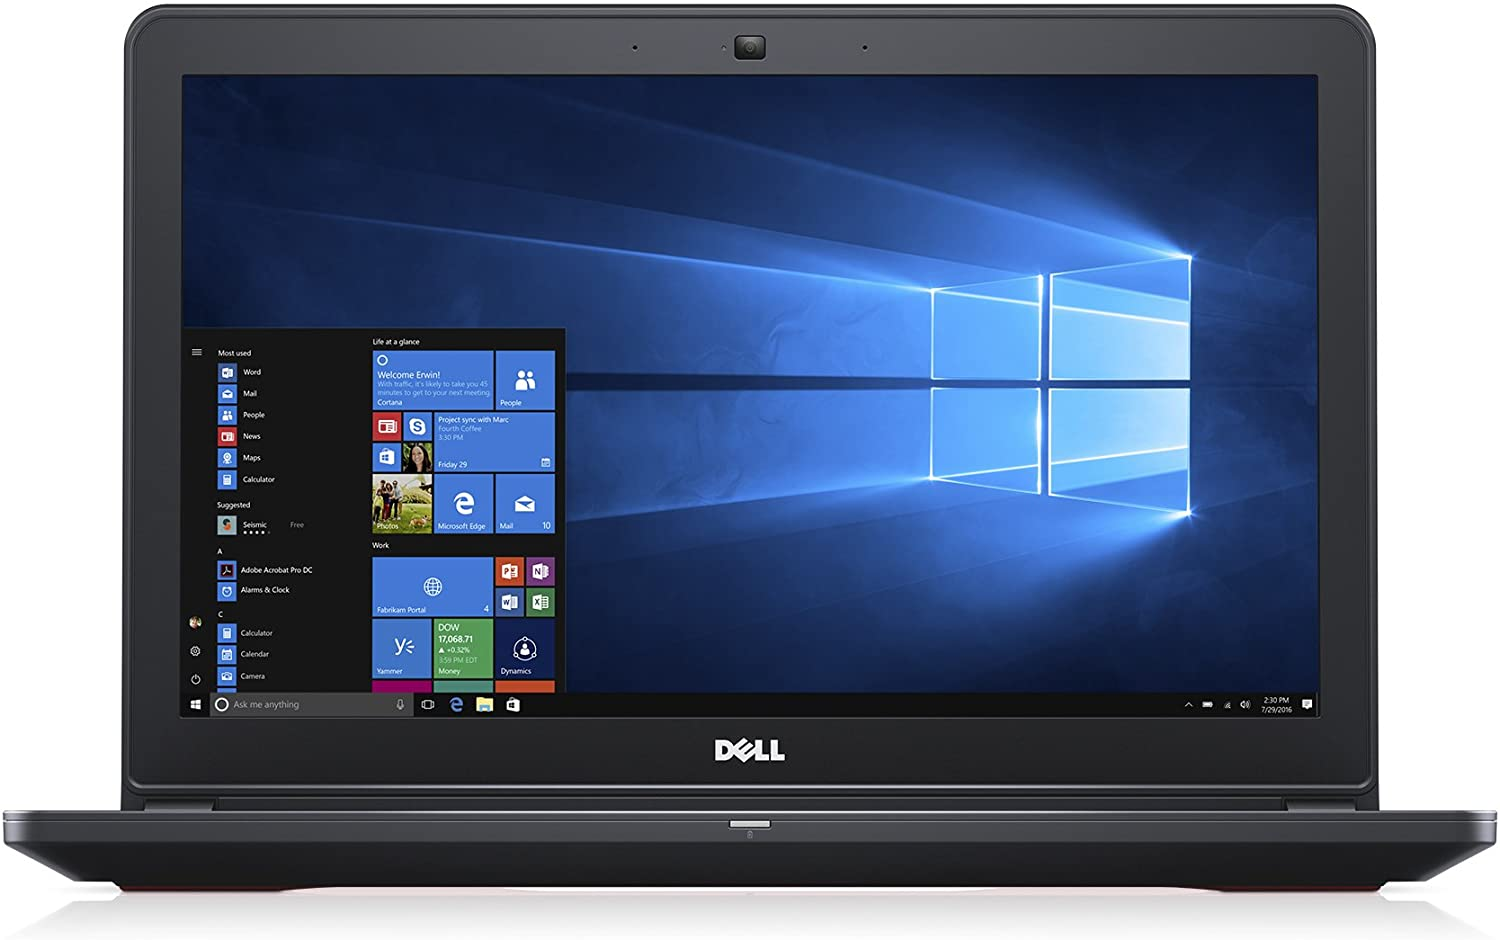 "Dell Inspiron i5577-7342BLK-PUS,15.6"" Gaming Laptop, (Intel Core i7,16GB,512GB SSD),NVIDIA GTX 1050"